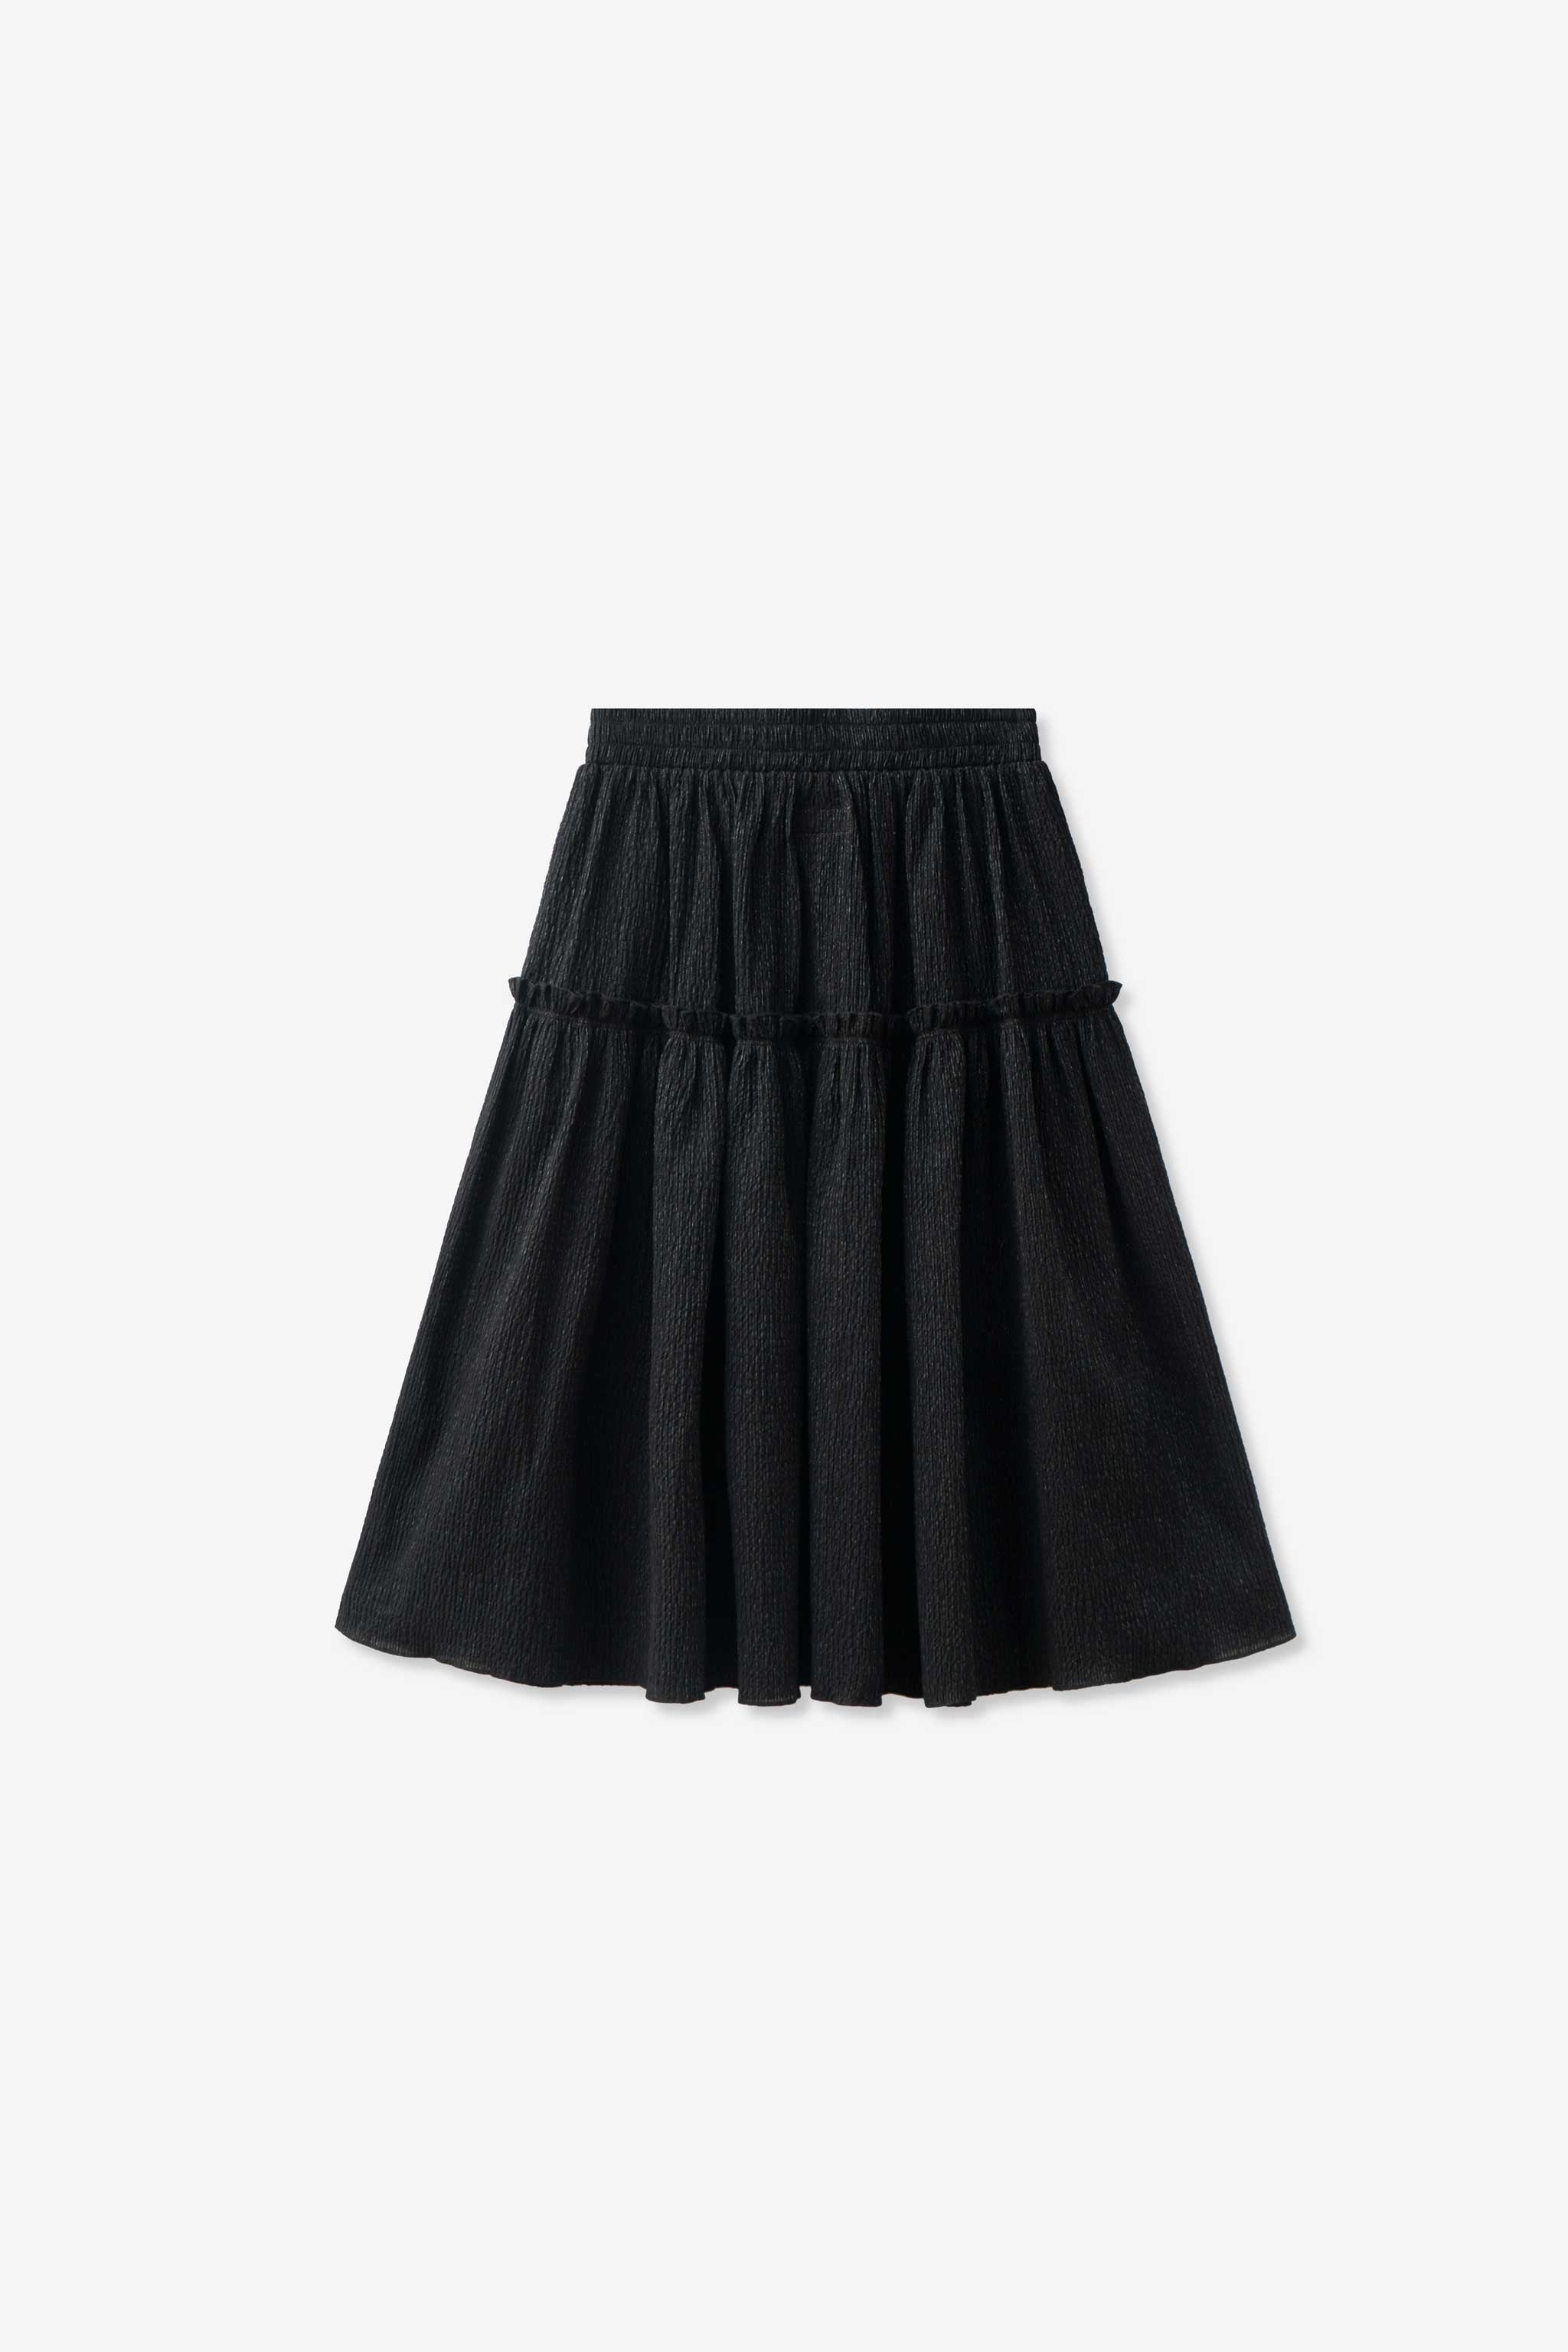 Goodfight Wanda Skirt Salvage Program Black Tinsel